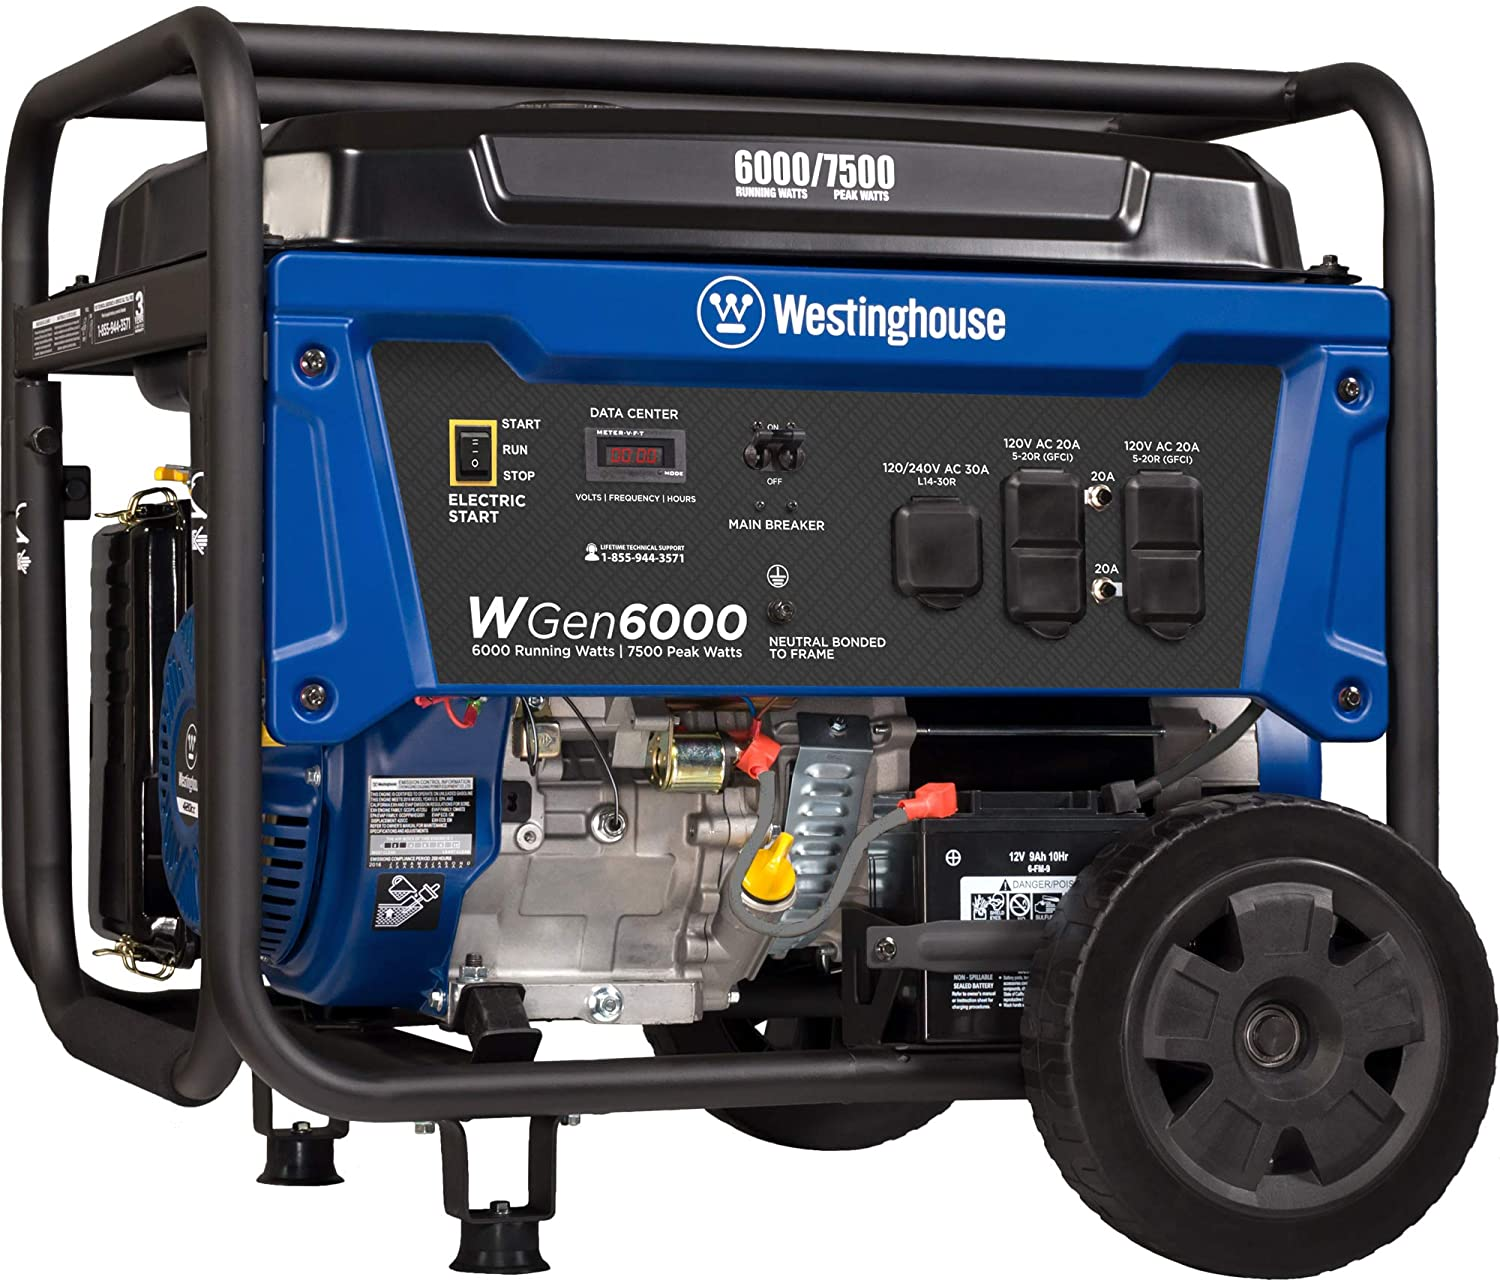 Westinghouse WGen6000 Portable Generator 6000 Rated & 7500 Peak Watts,